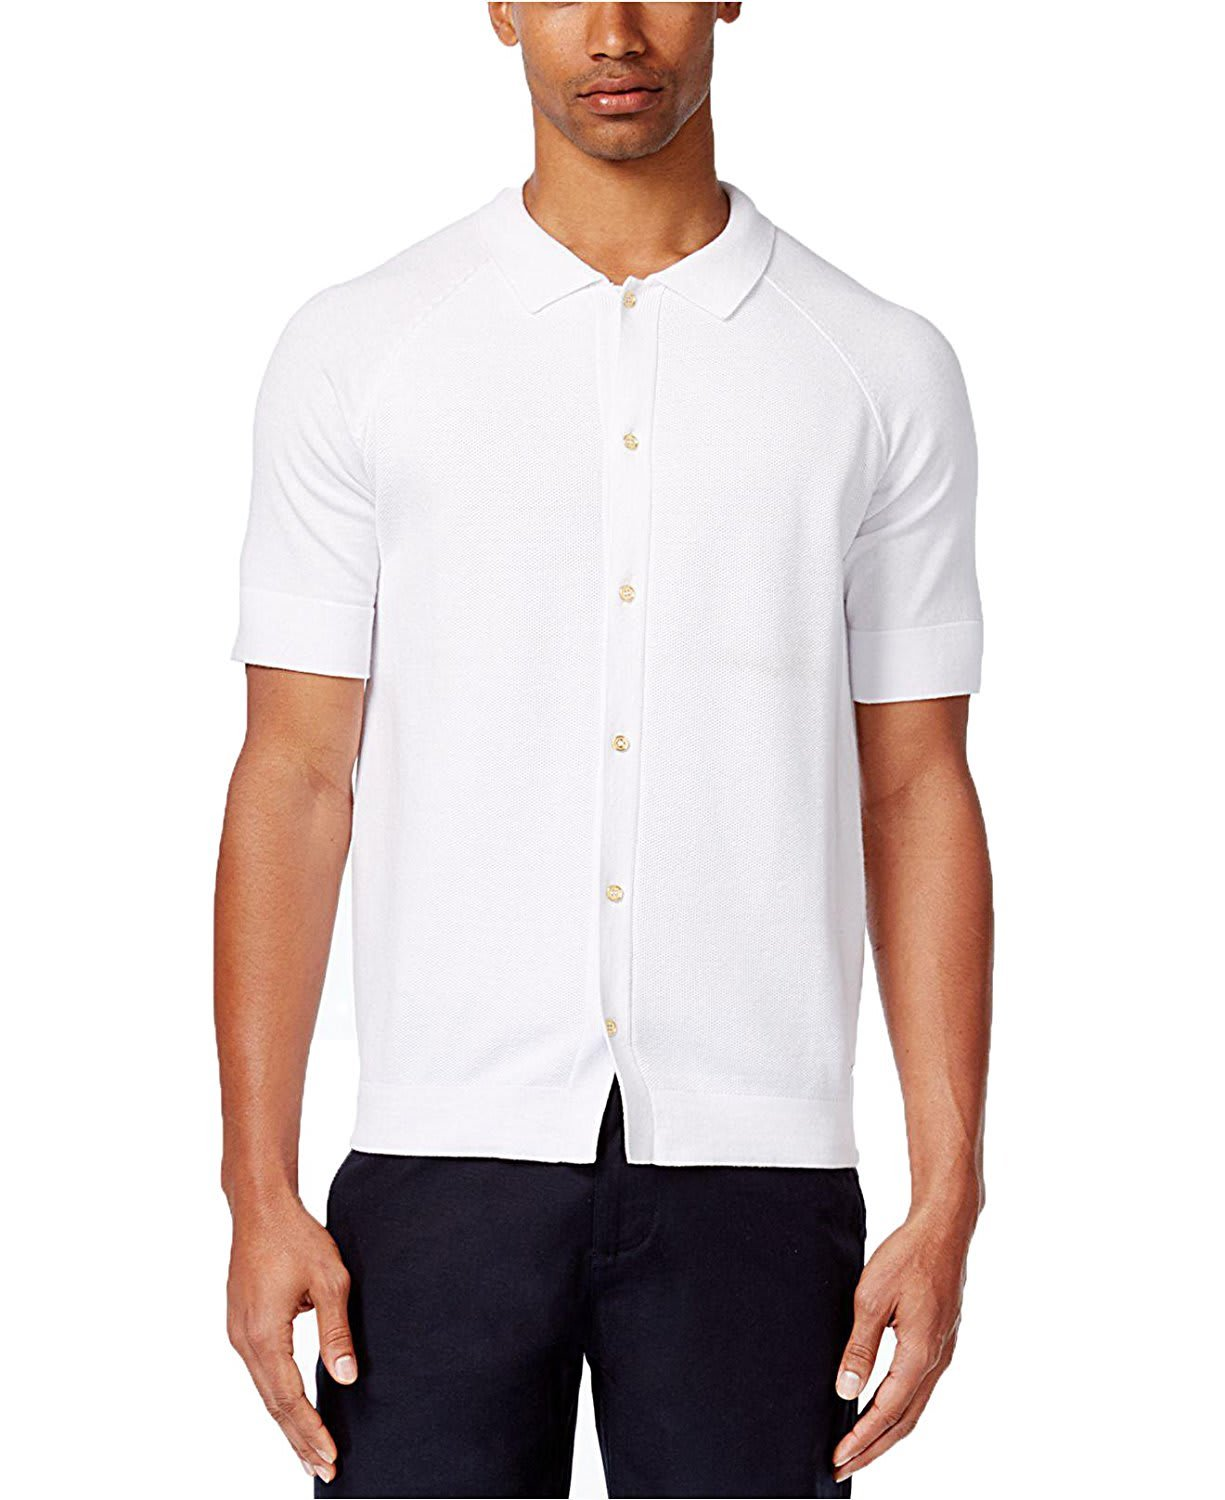 Sean John Mens Knit Textured Button-Down Shirt MS170102 BRIGHT WHITE